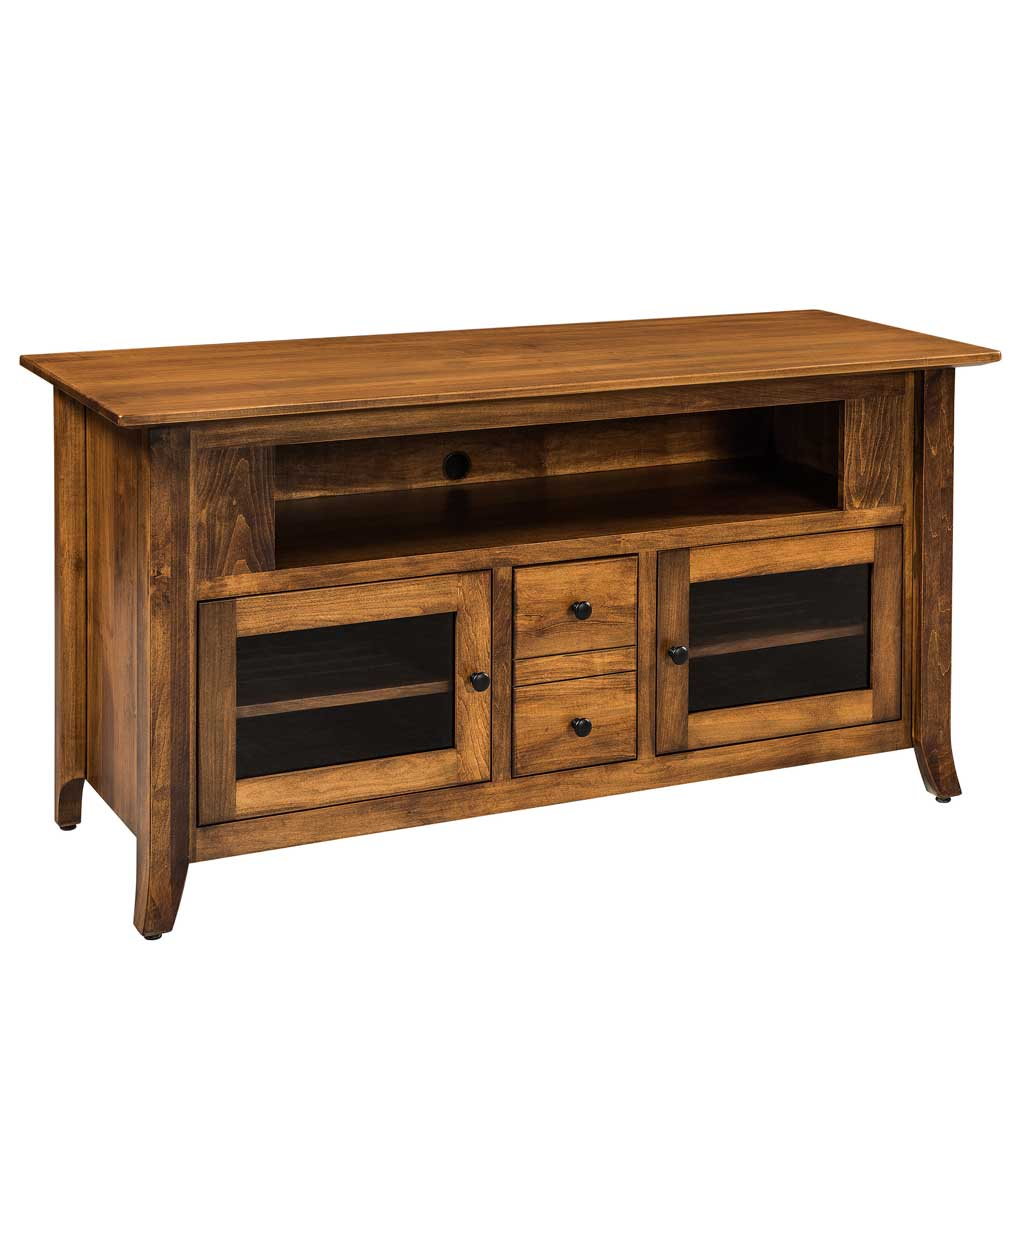 Vanderbilt TV Stand Amish Direct Furniture